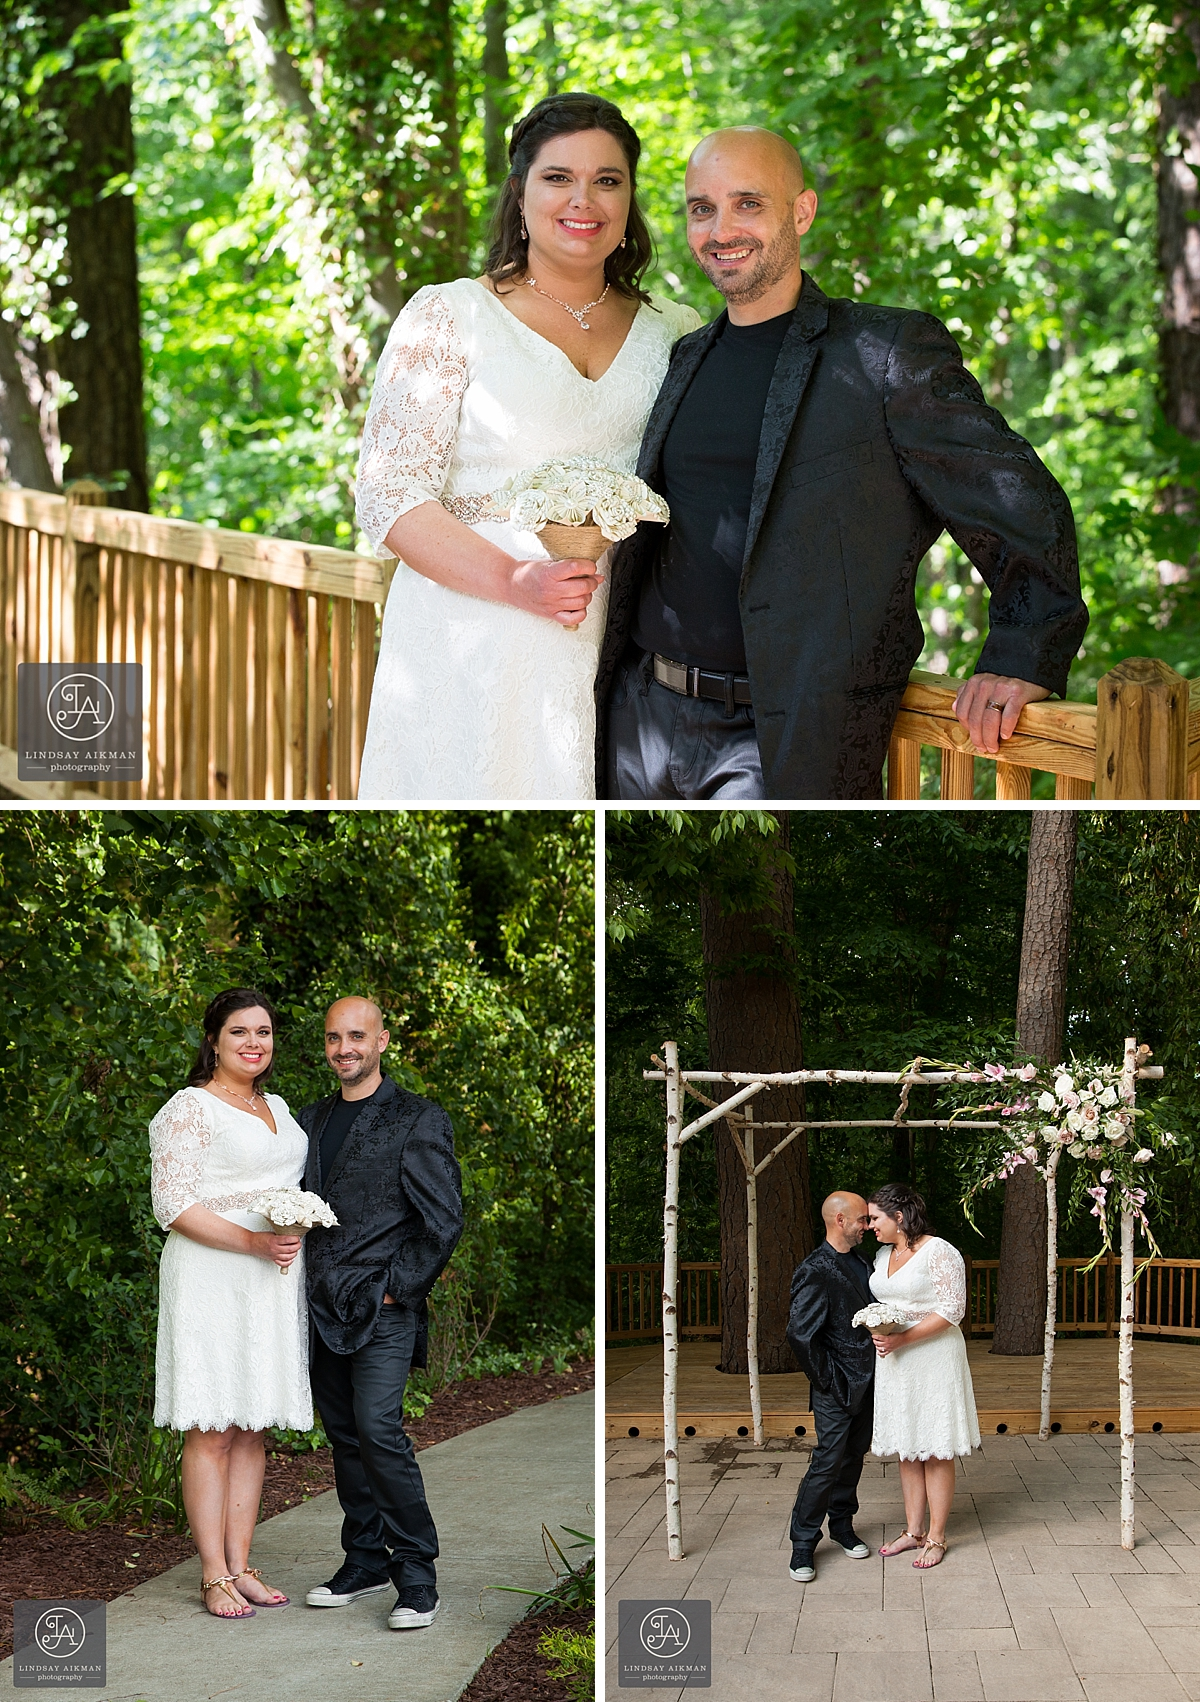 The Glenwood Raleigh Wedding Photographer